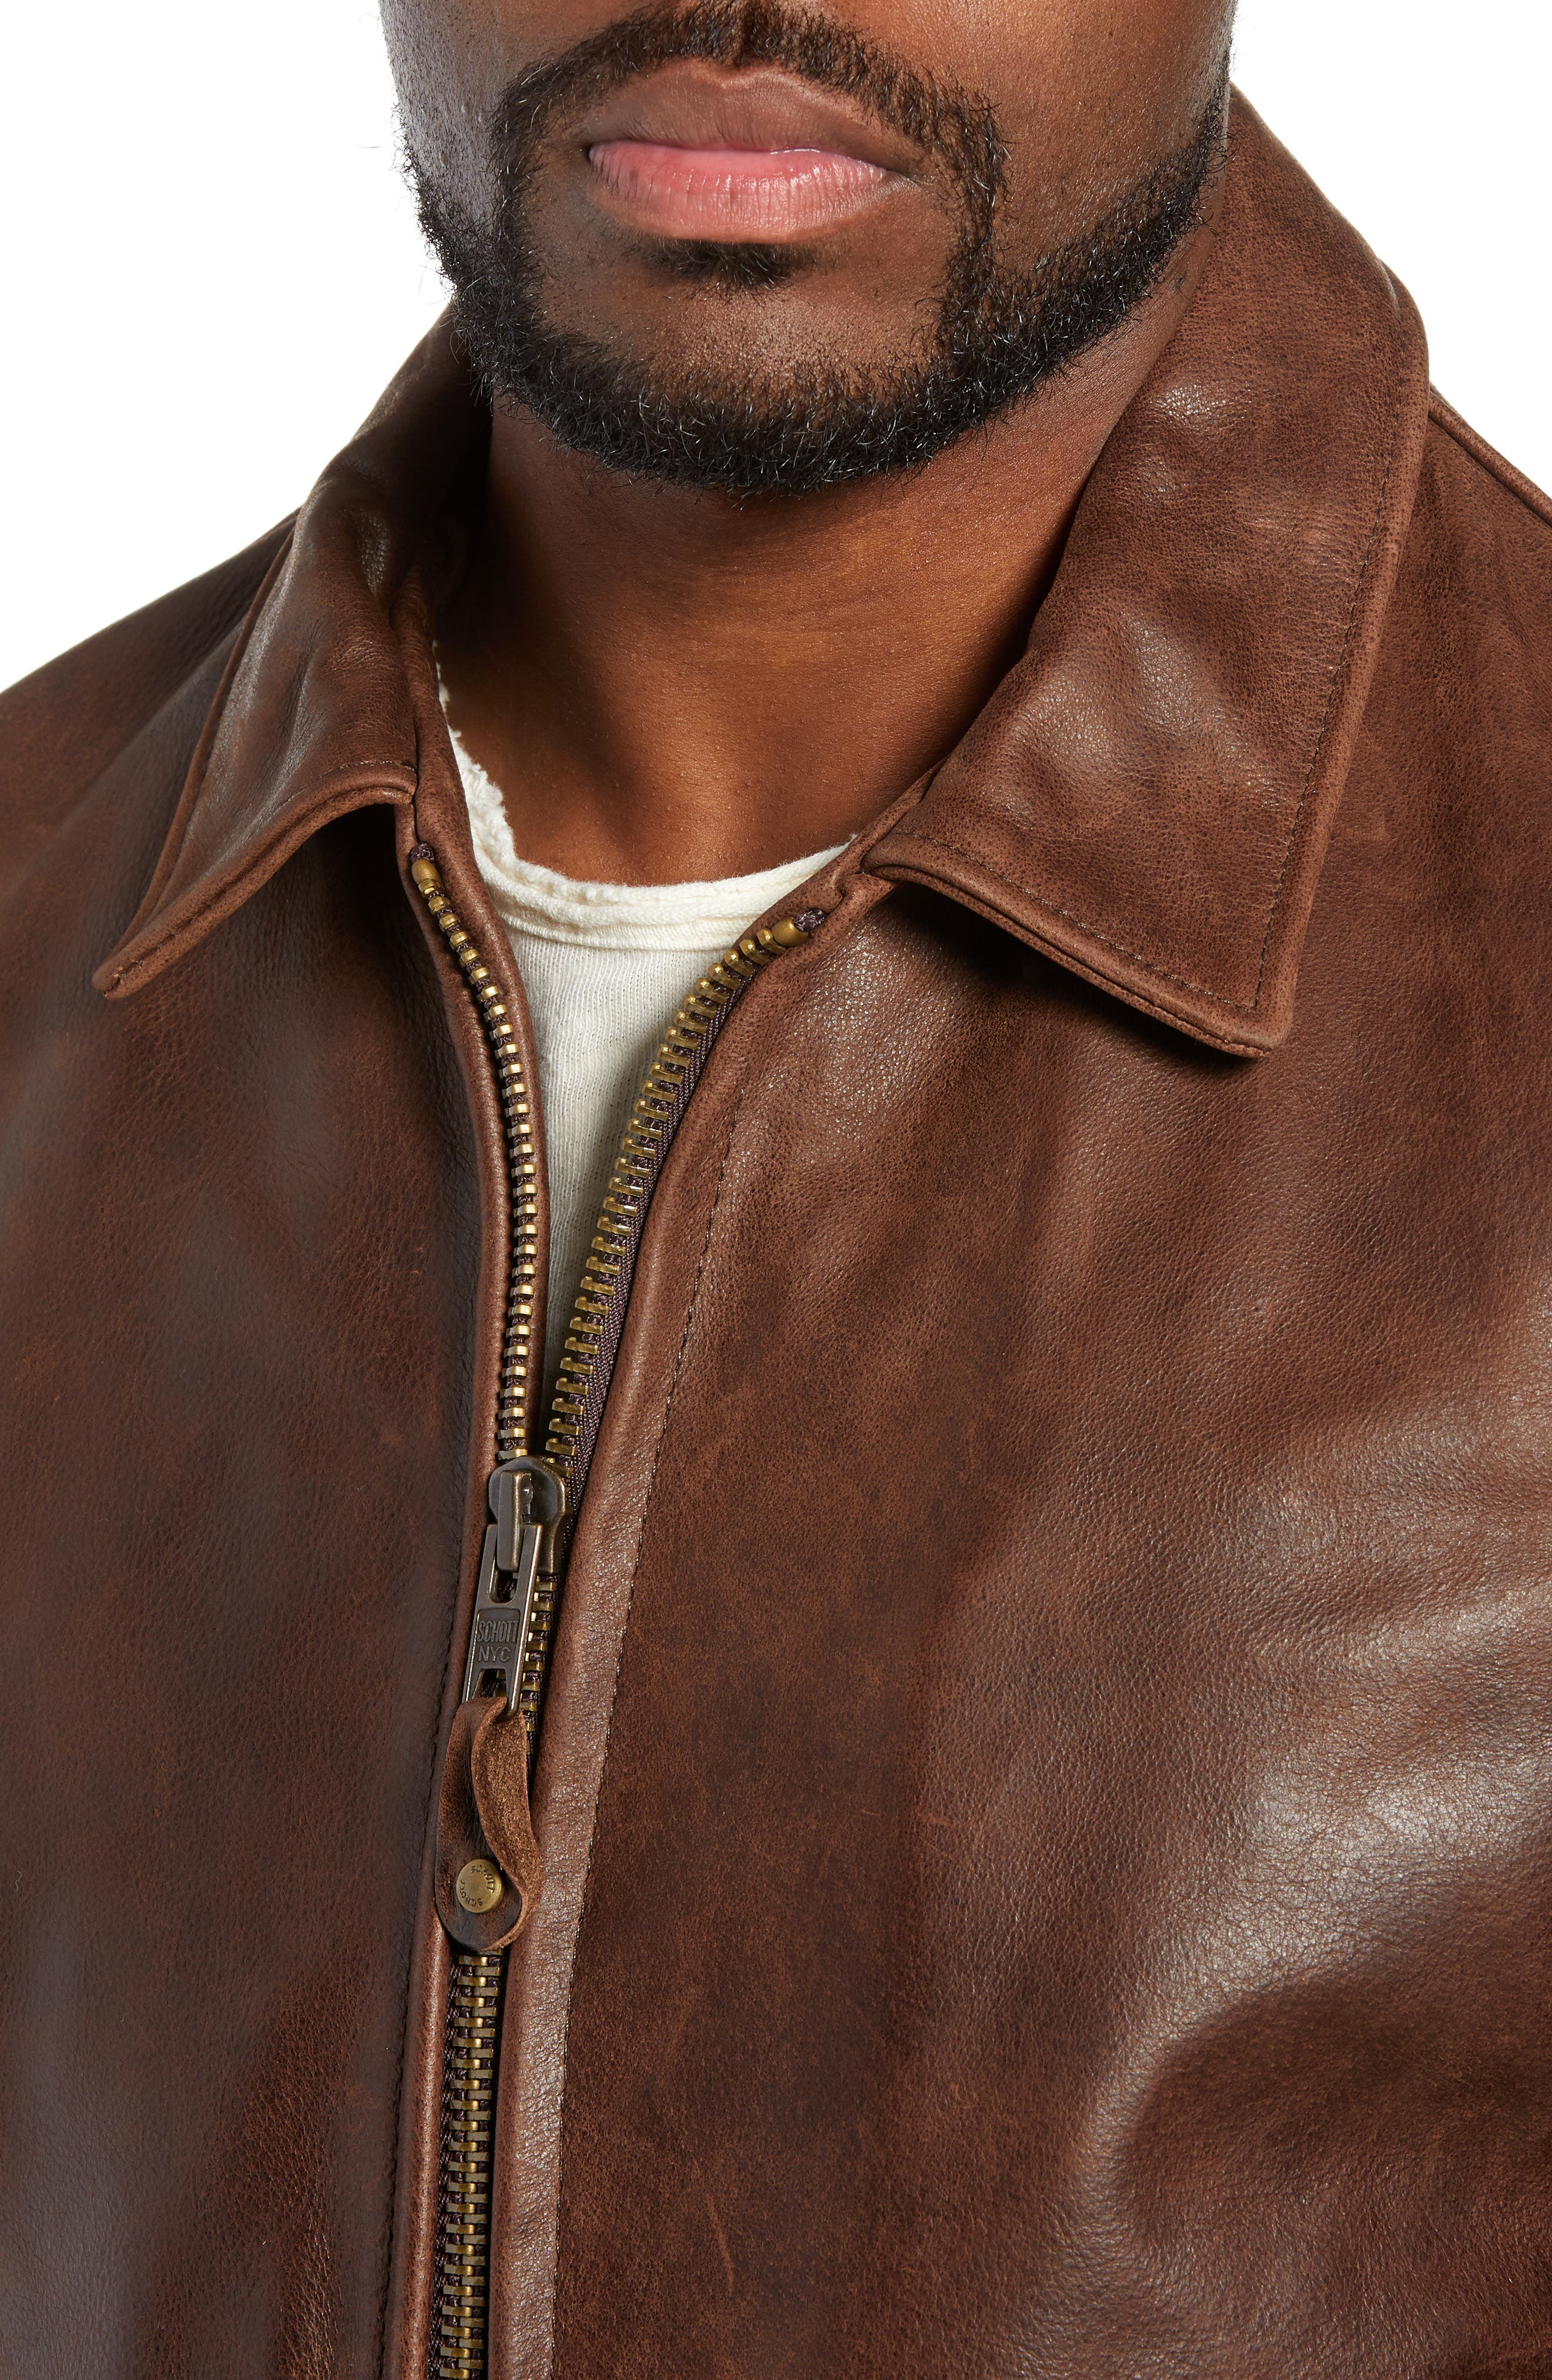 Waxy Naked Buffalo Leather Delivery Jacket,                             Alternate thumbnail 4, color,                             200